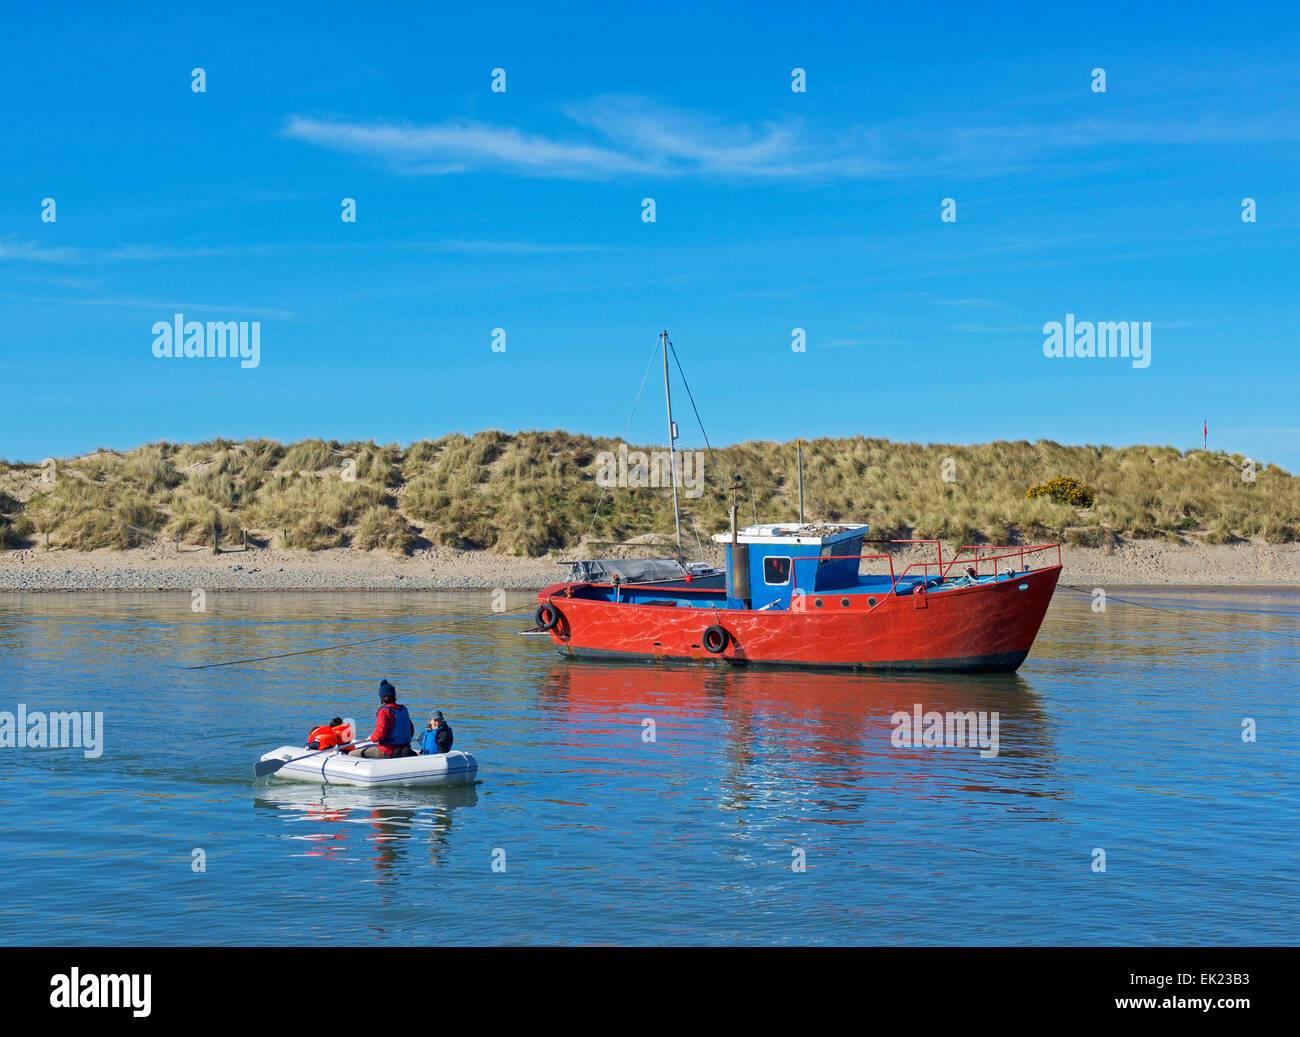 Family in inflatable dinghy at Barmouth, Gwynedd, Wales UK - Stock Image